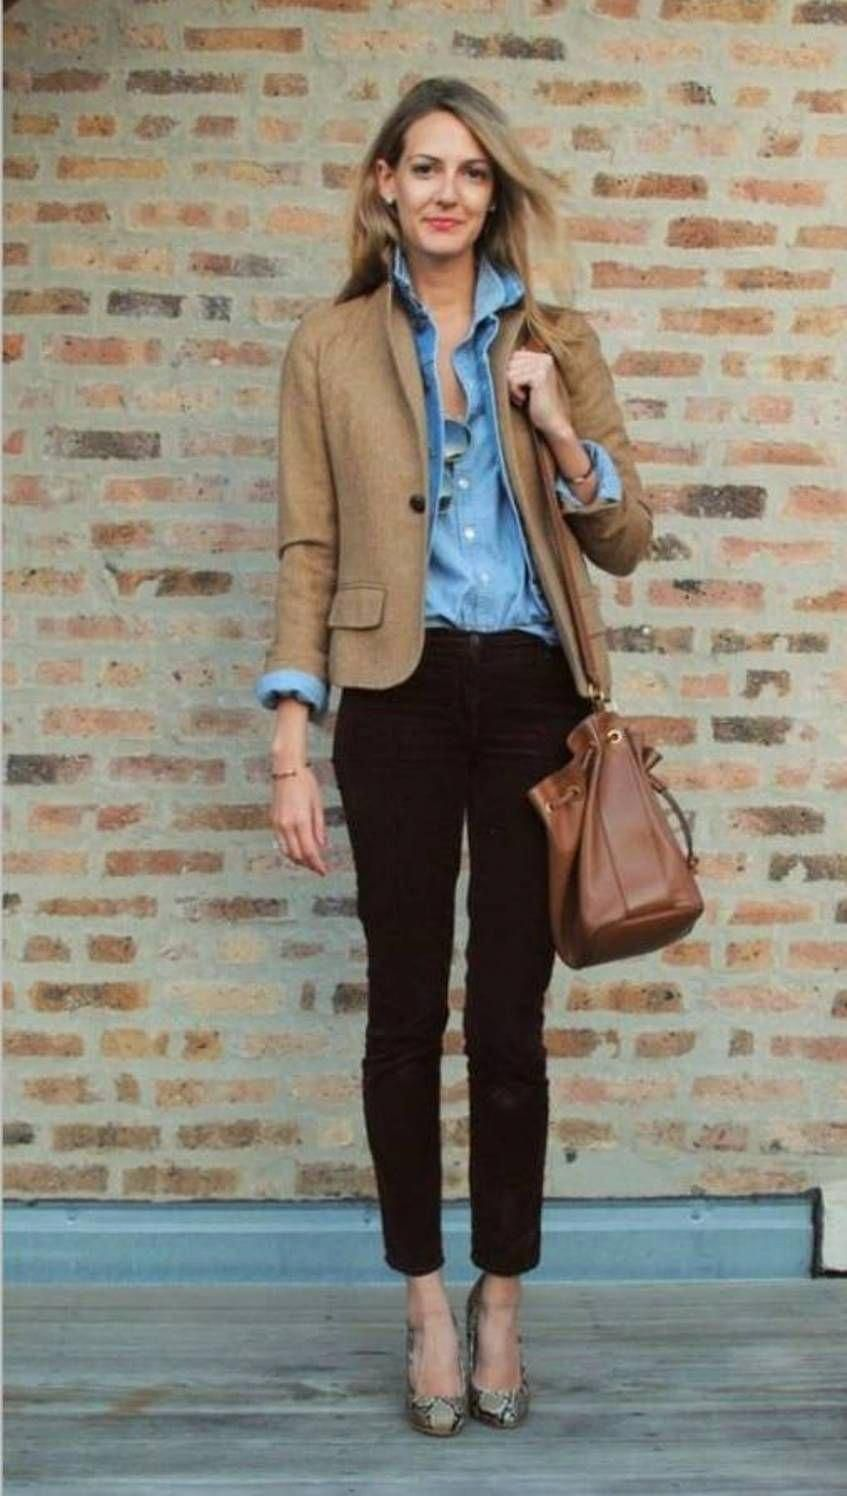 Upscale Casual Dress Code : upscale, casual, dress, Upscale, Fashionable, Attire, Dress, Google, Search, #WomenFashionDesigners, Trendy, Business, Casual,, Womens, Casual, Outfits,